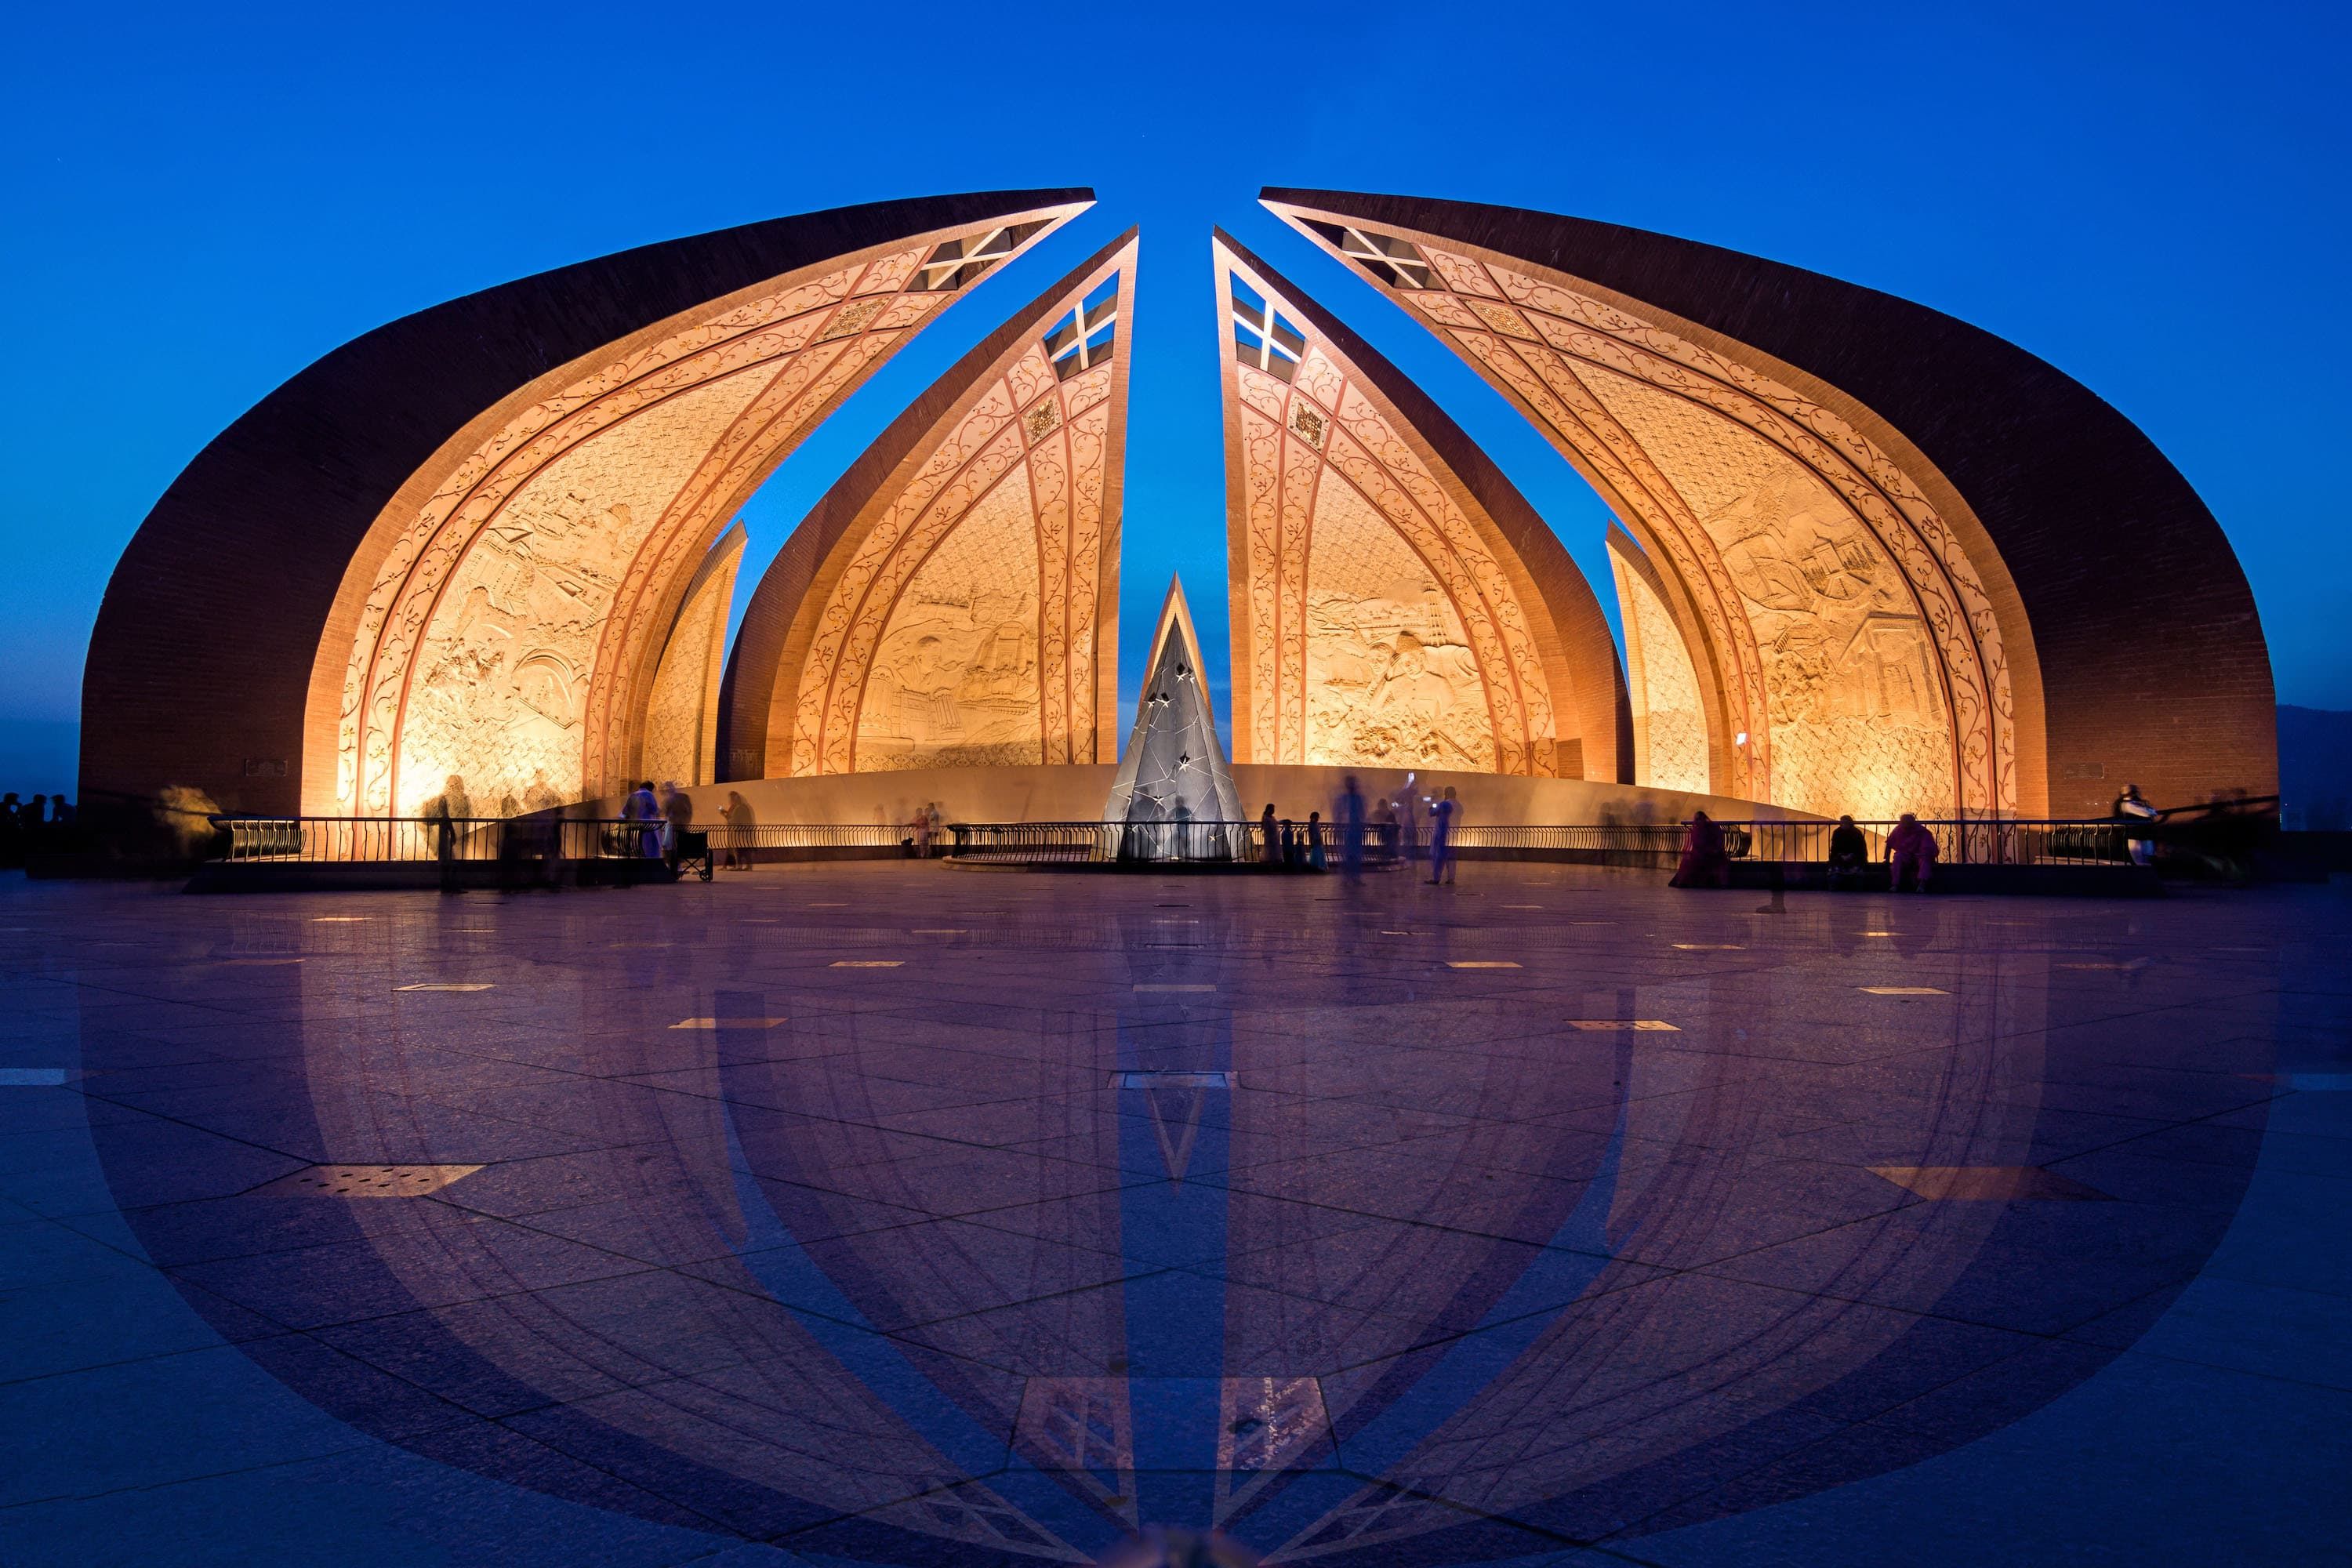 Pakistan Monument in Islamabad. — Photo by Muhammad Ashar